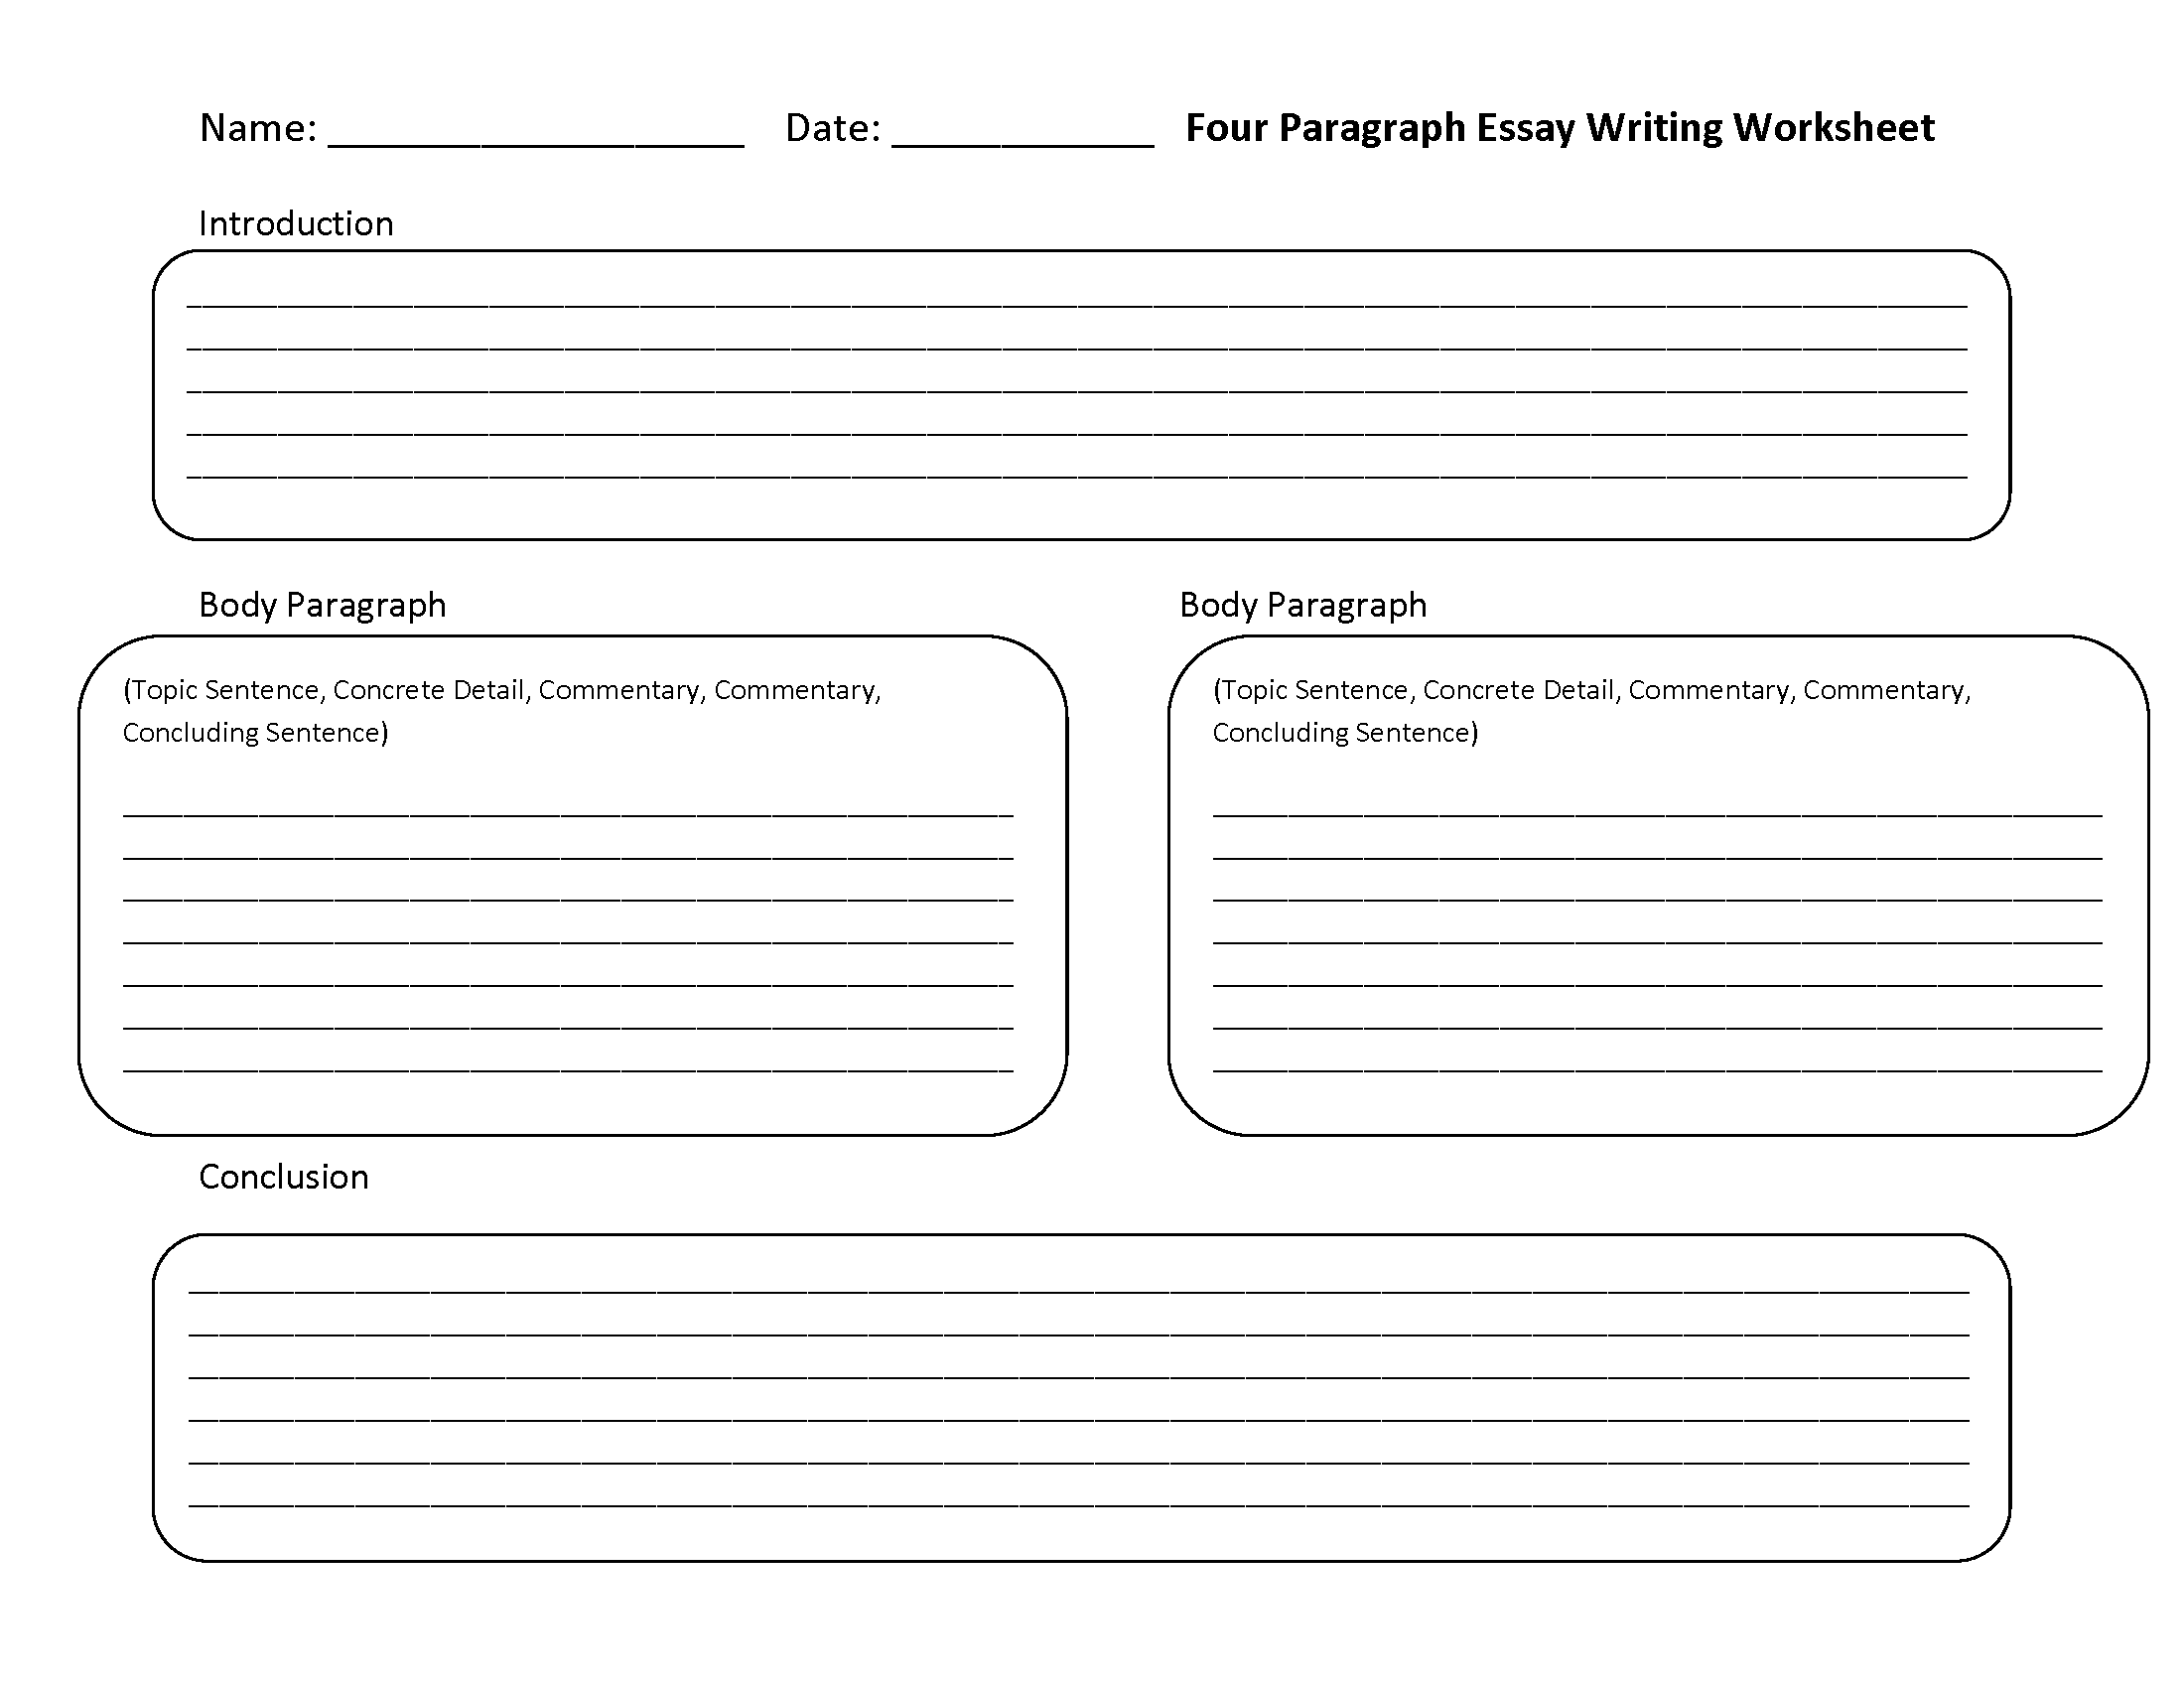 Four Paragraph Essay Writing Worksheets